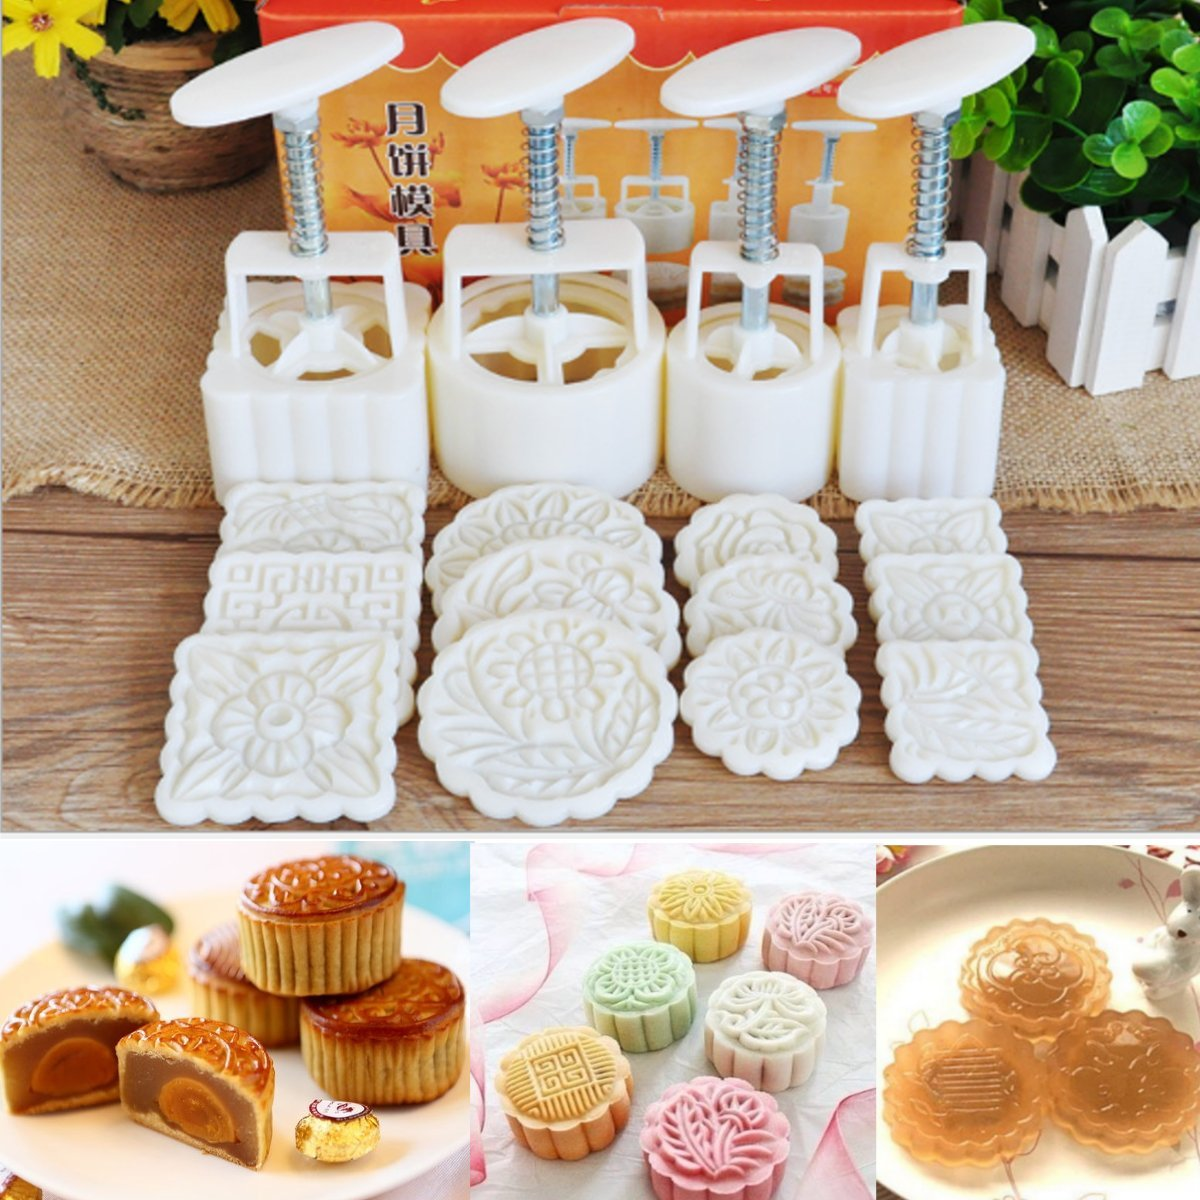 KINGSO Mid-Autumn Festival Mooncake Mold Hand Pressure Mould DIY Cake Decoration Tool (12 Flower Stamps)